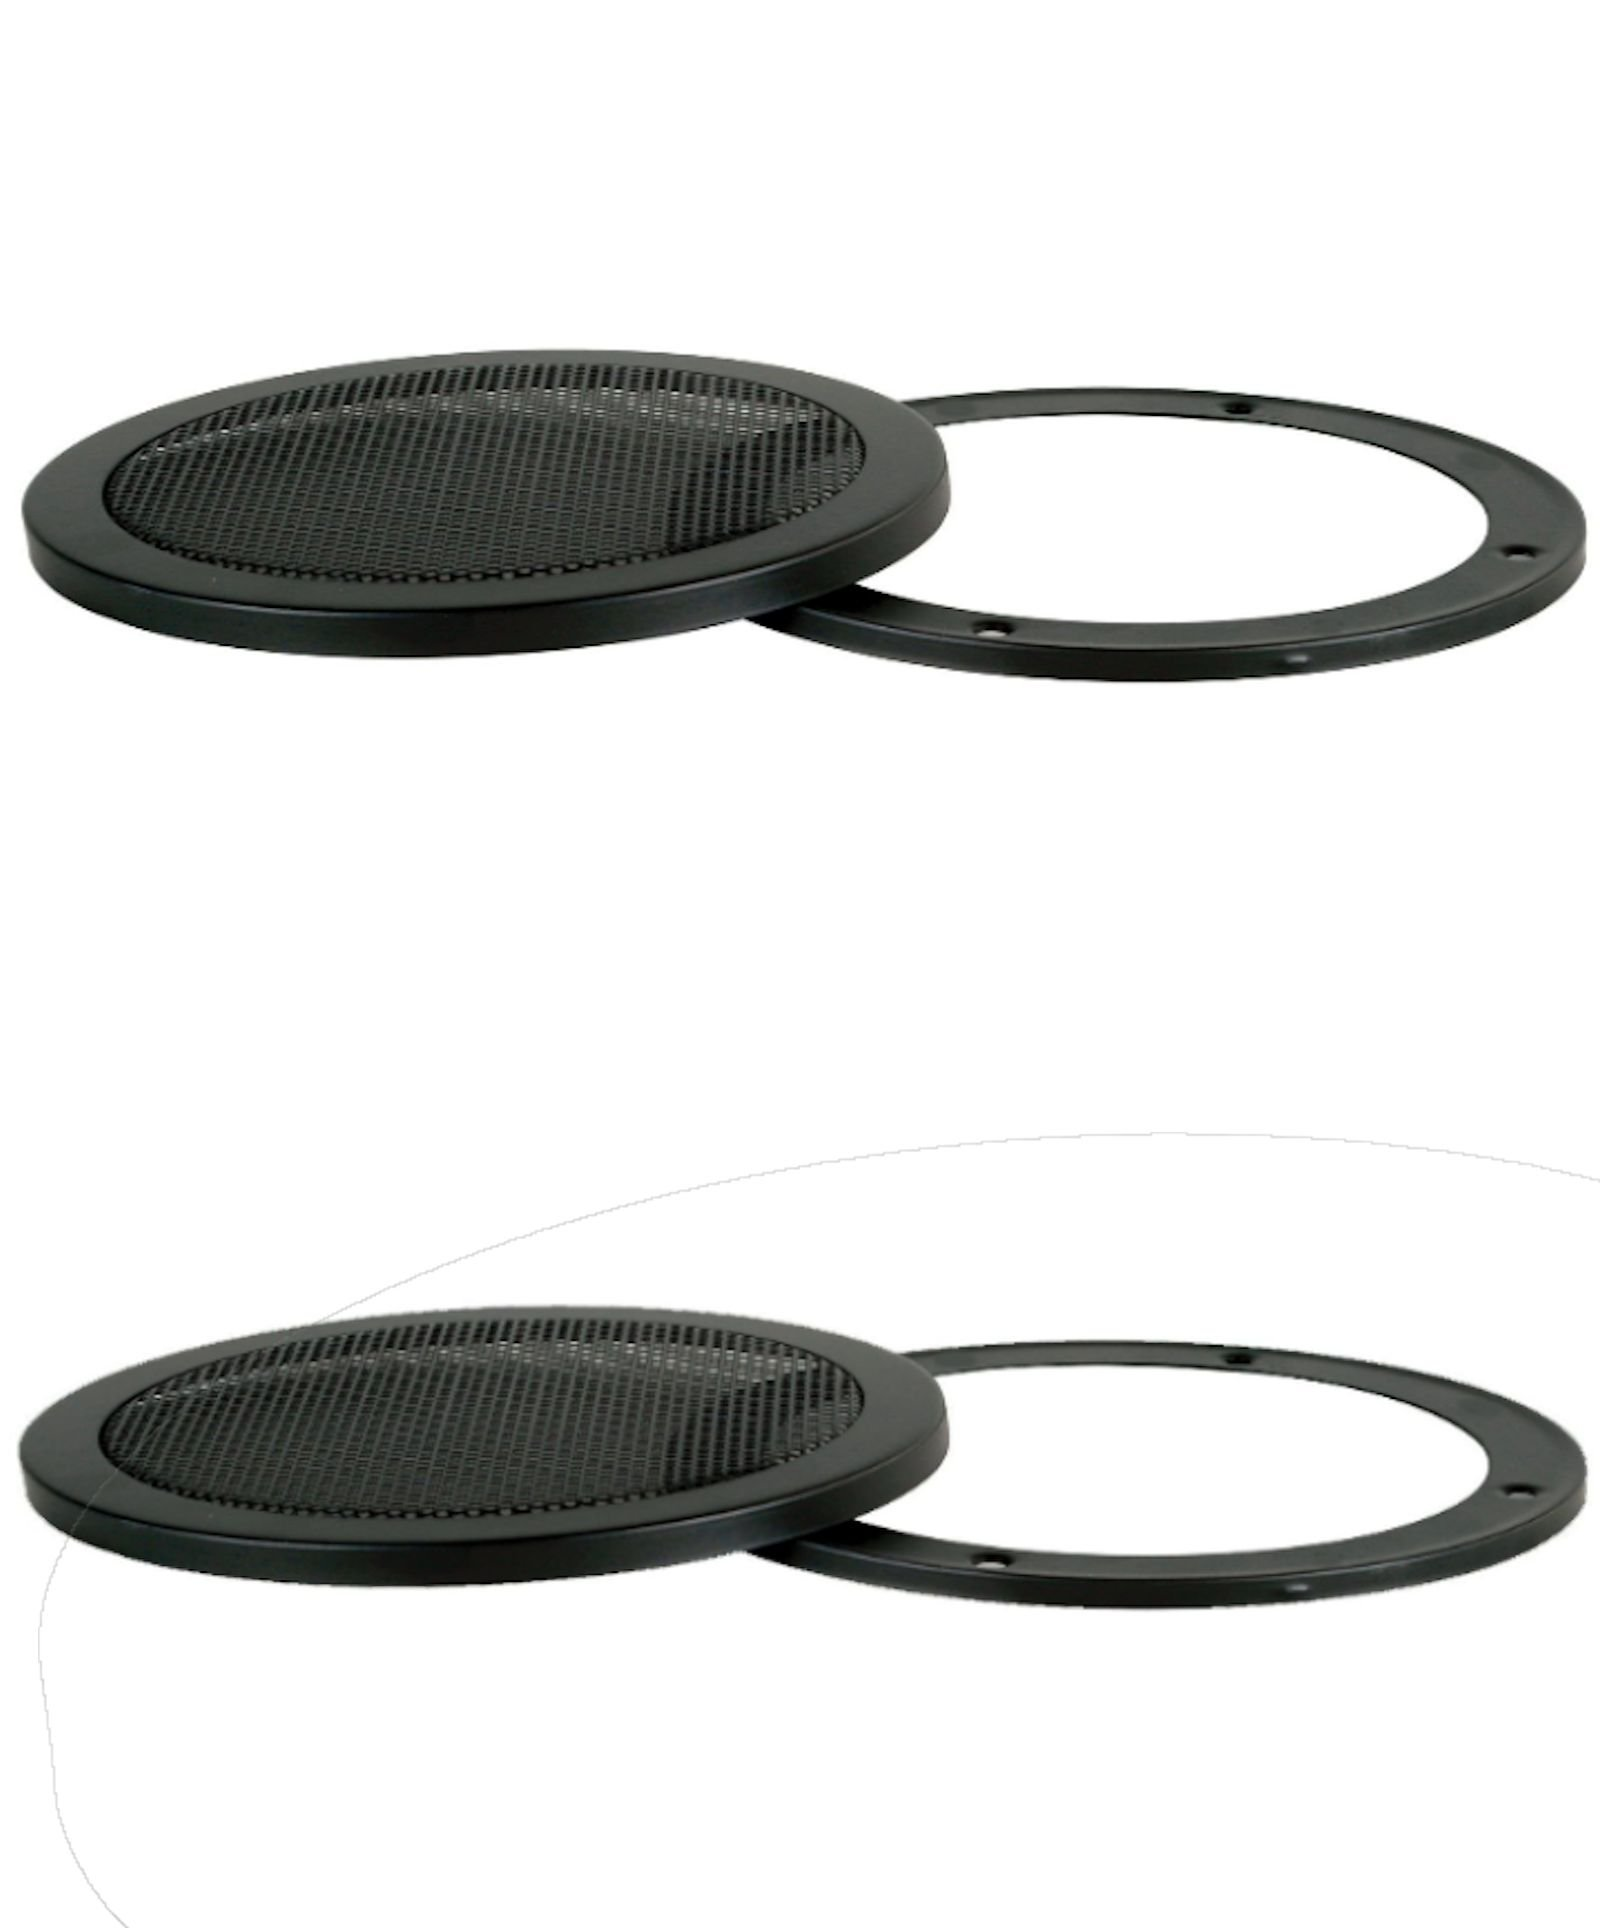 PAIR 12-Inch 2-Piece Steel Mesh Speaker Subwoofer Grill - Black